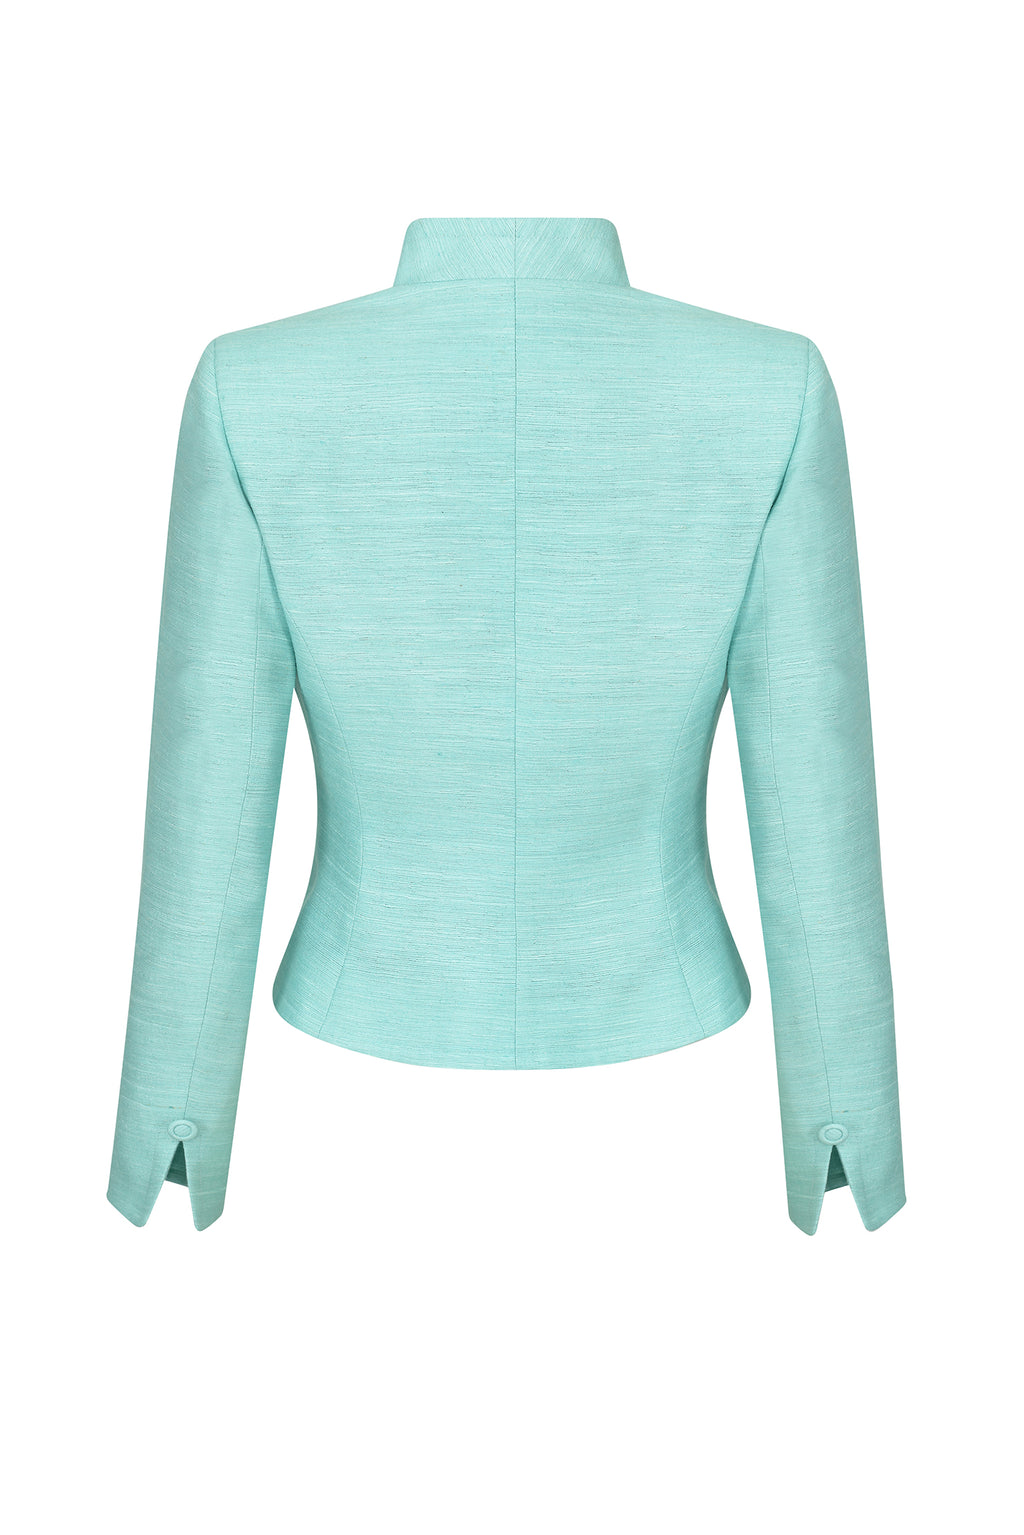 Waisted Edge-to-Edge Jacket in Plain Raw Silk in Aqua - Margo